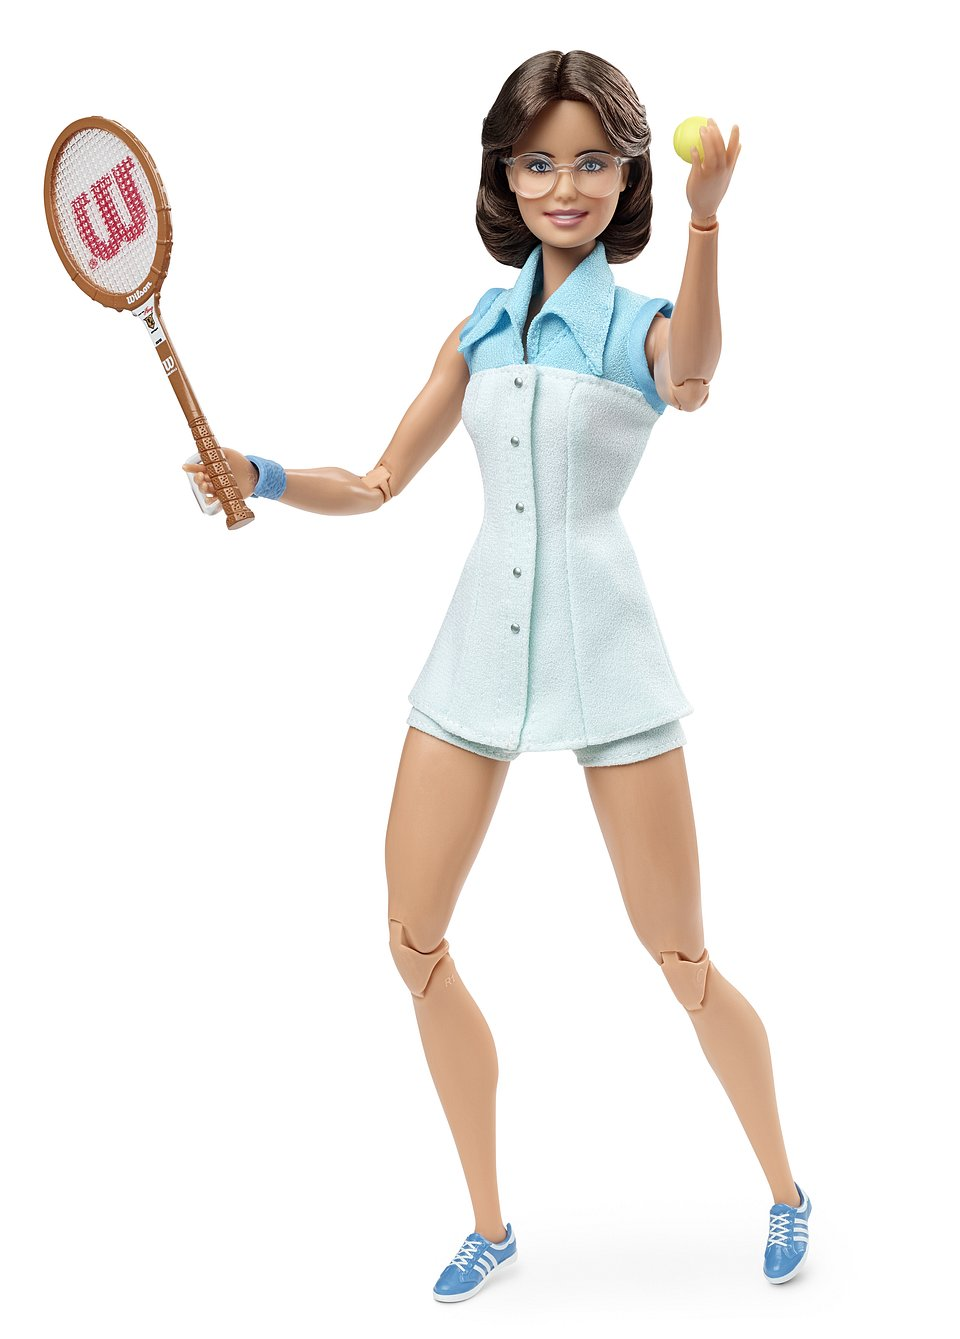 Barbie Inspiring Women Billie Jean King (GHT85).jpg